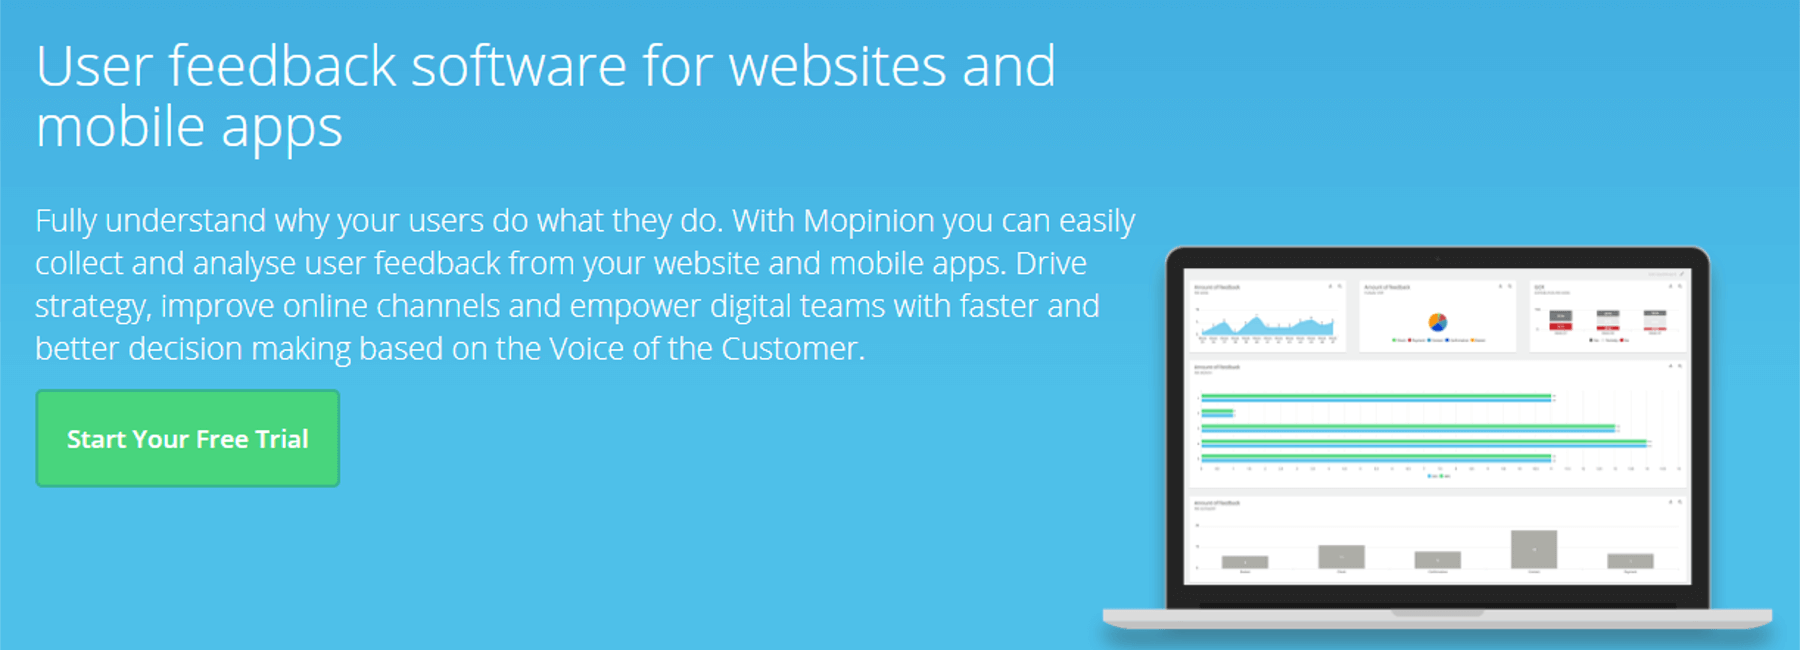 New and improved Product page on the Mopinion website - Mopinion